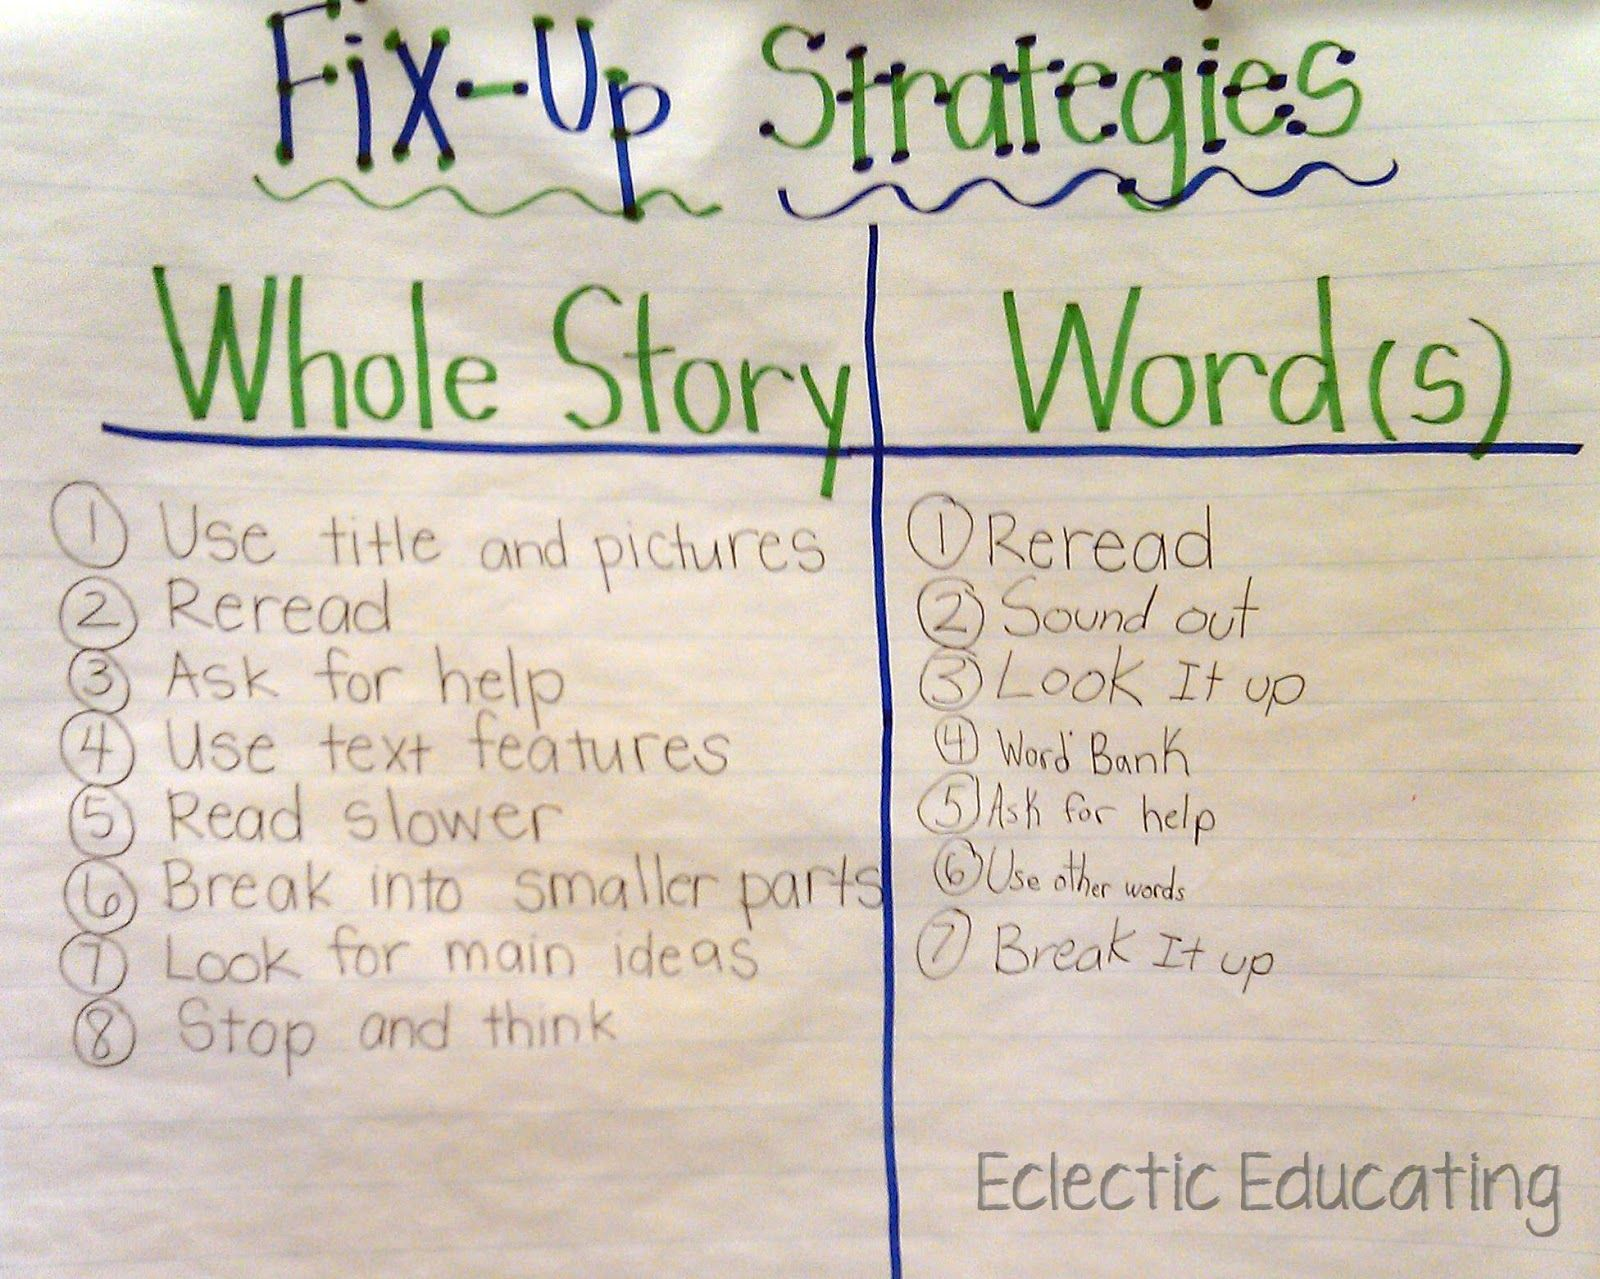 Fix Up Strategies From Ecclectic Educating I Love Her